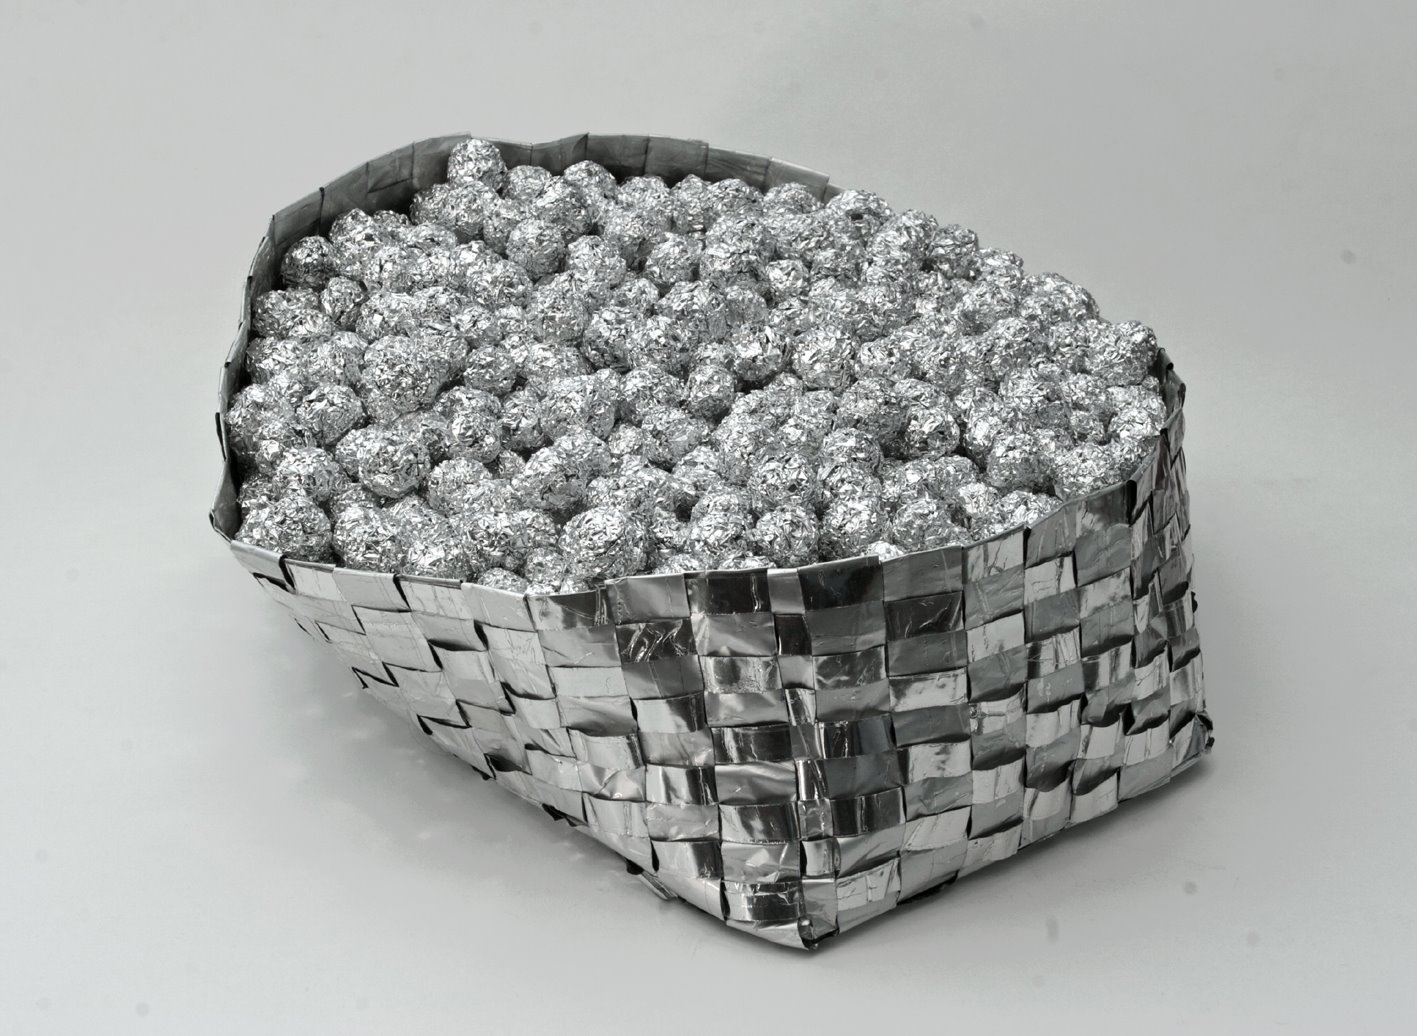 """Ark of Many Moons  aluminum foil and clear packing tape 5 x 12 x 12"""" photo credit: Dalibor Zorić 2008"""